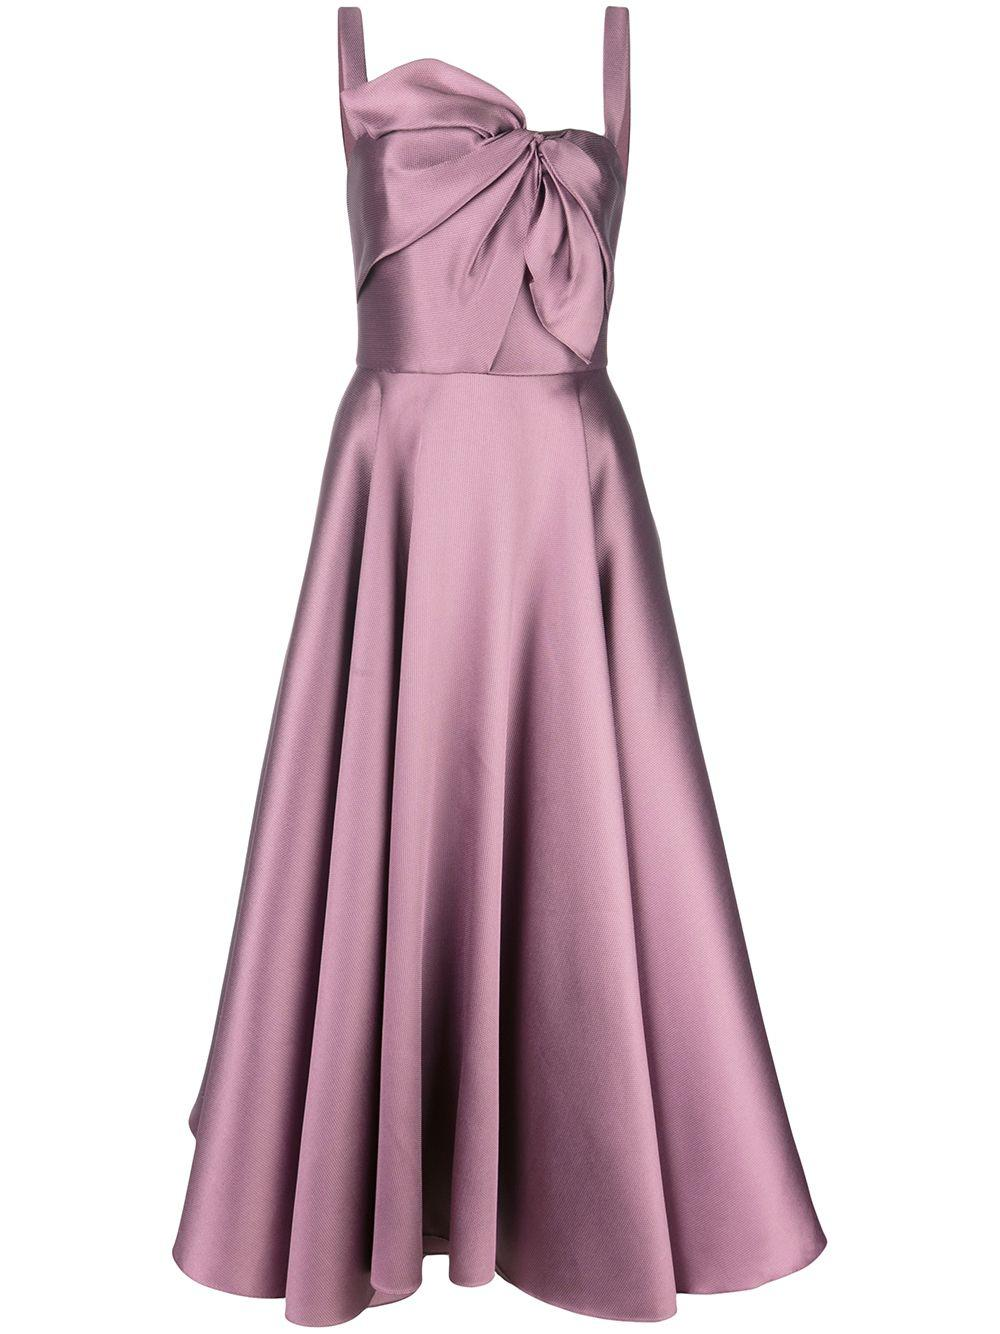 Sleeve Less Mikado Pique Tea Length Gown